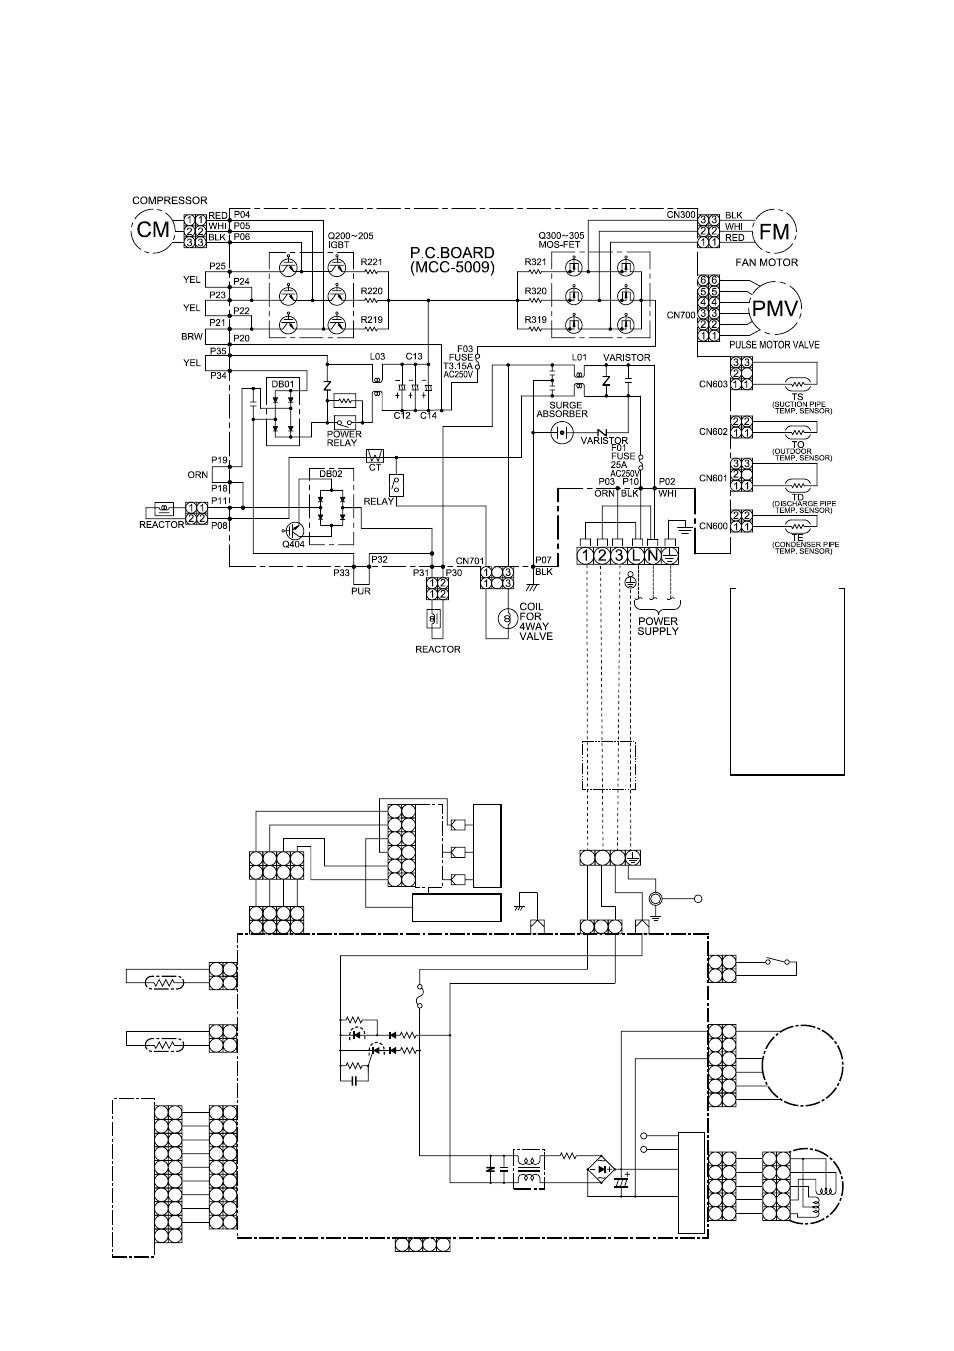 Wiring       diagram     1 outdoor unit  2 indoor unit   Toshiba